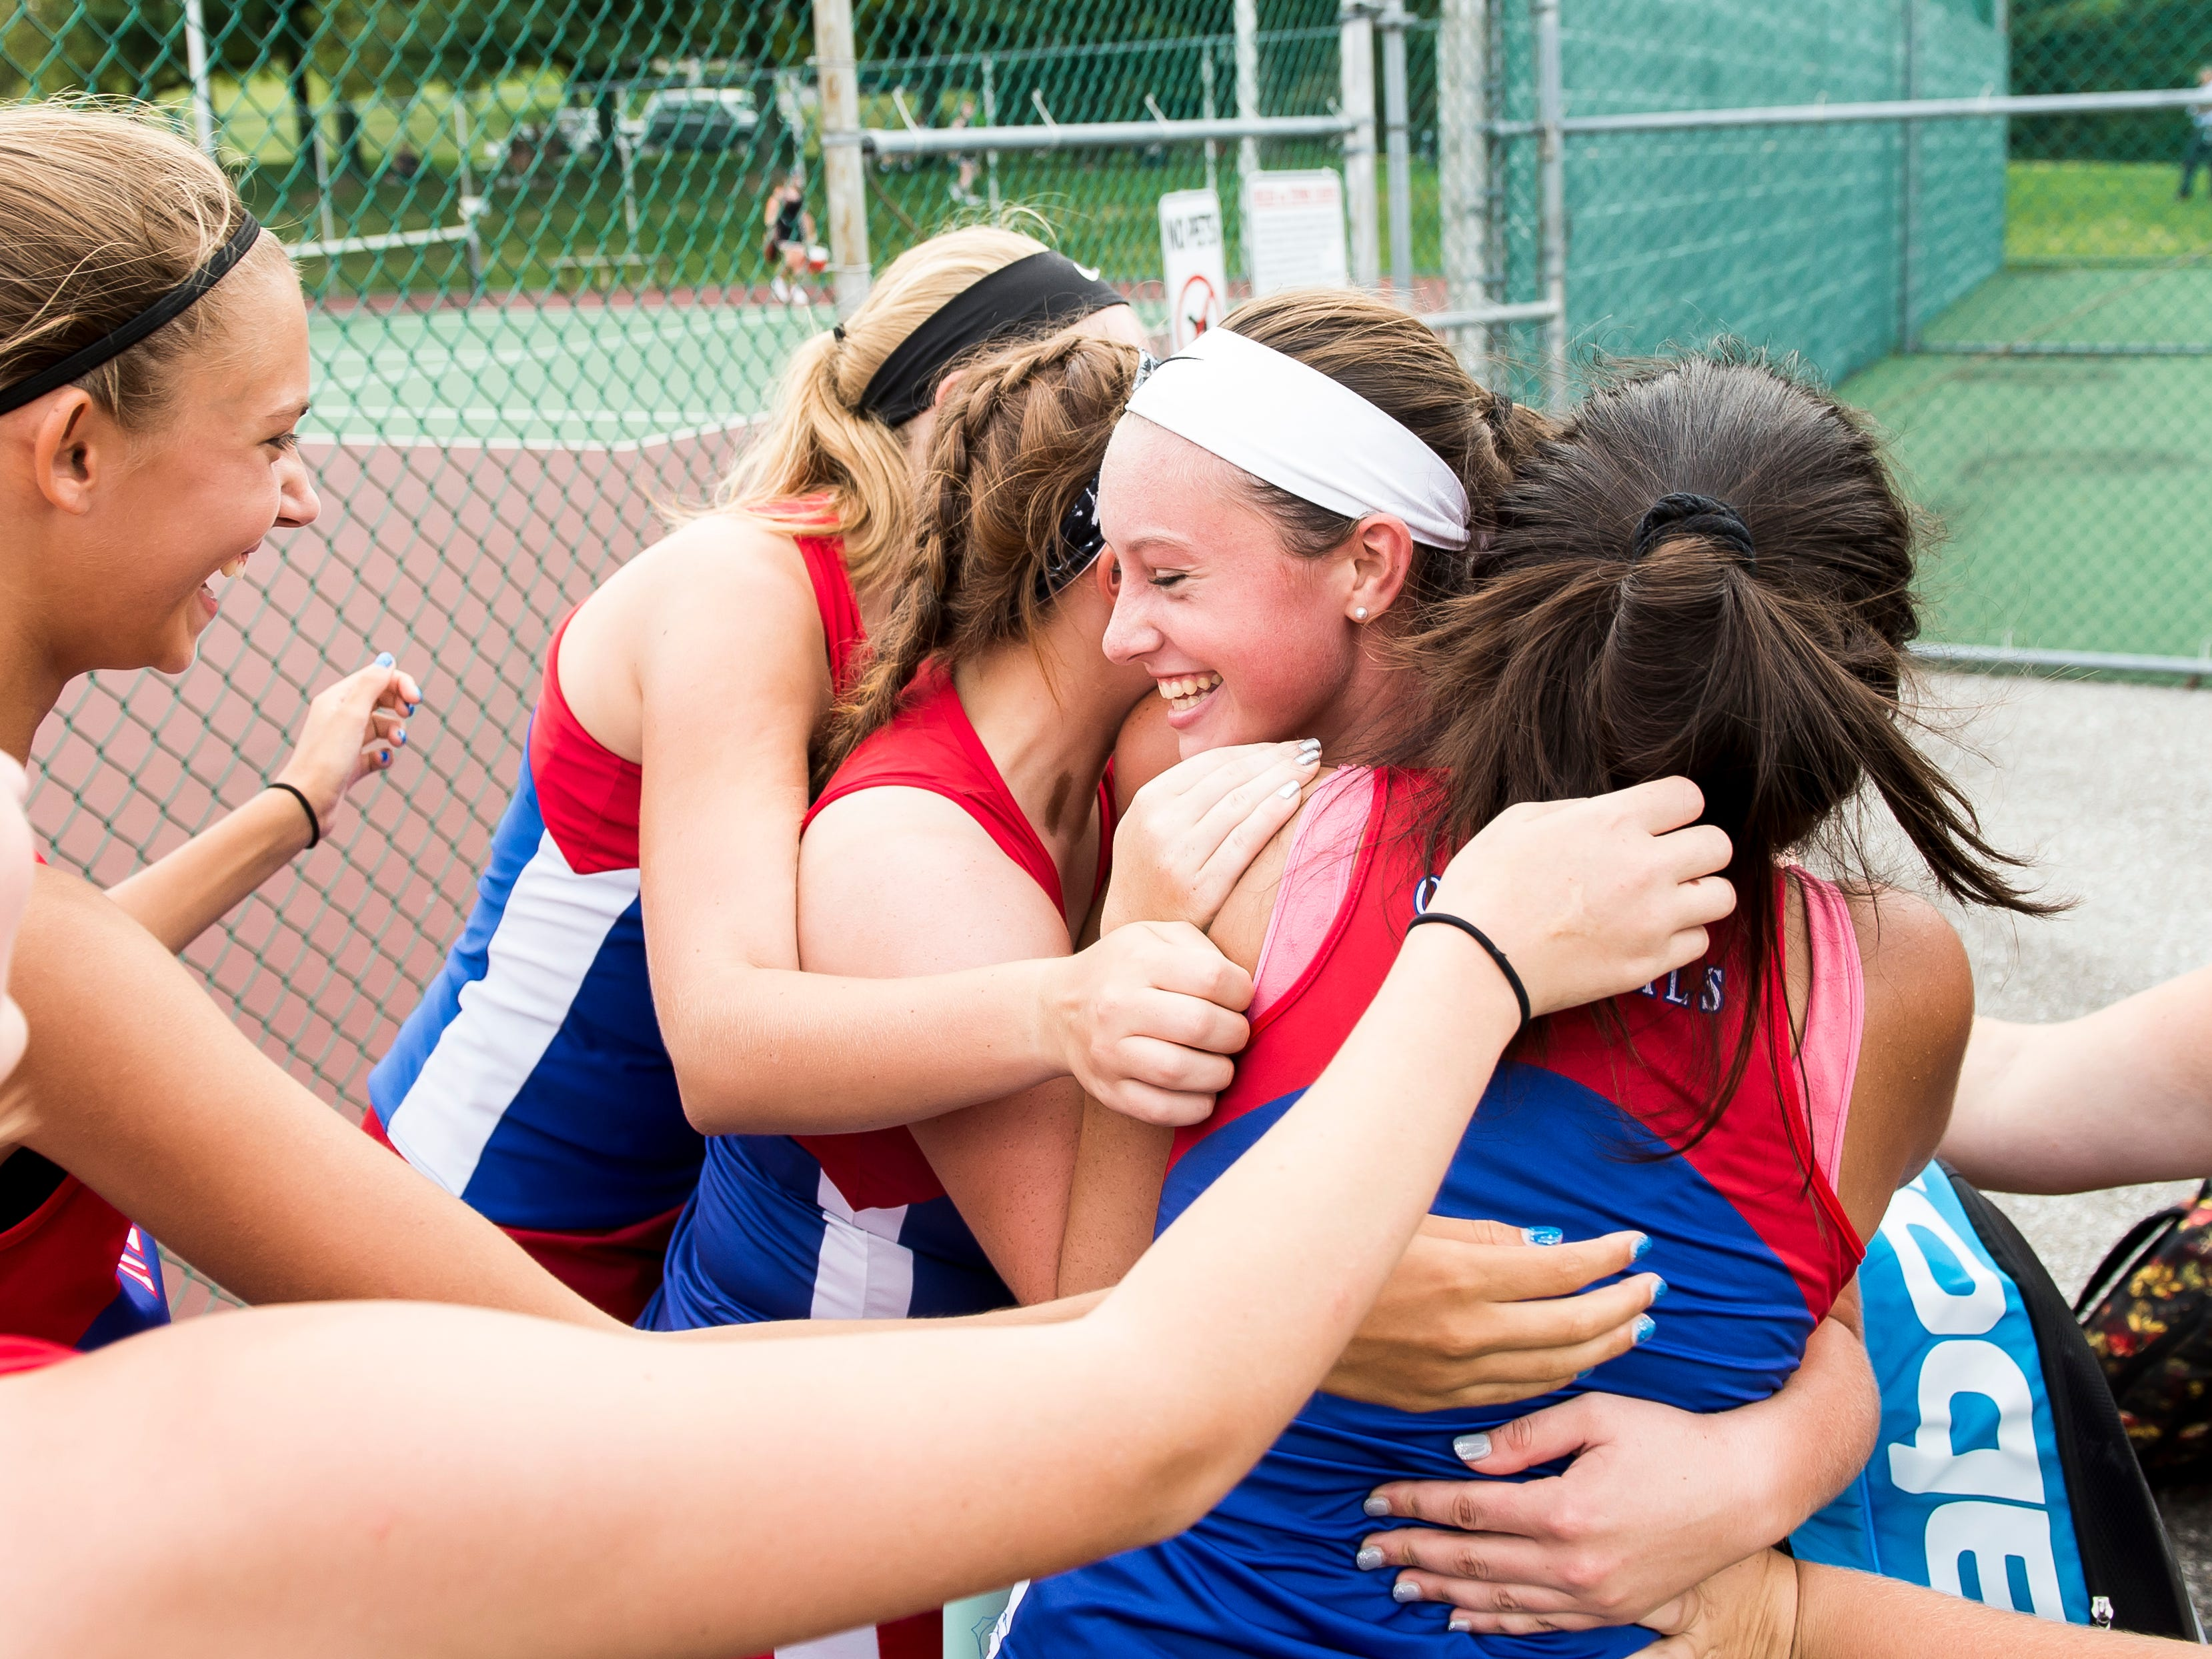 New Oxford's Kasi Conjack, center, is mobbed by her teammates after she won the No. 2 singles match against South Western on Tuesday, October 2, 2018. Conjack's victory gave New Oxford the match win against the Mustangs and handed the Colonials a share of the YAIAA Division I girls tennis championship title, a first for the program.